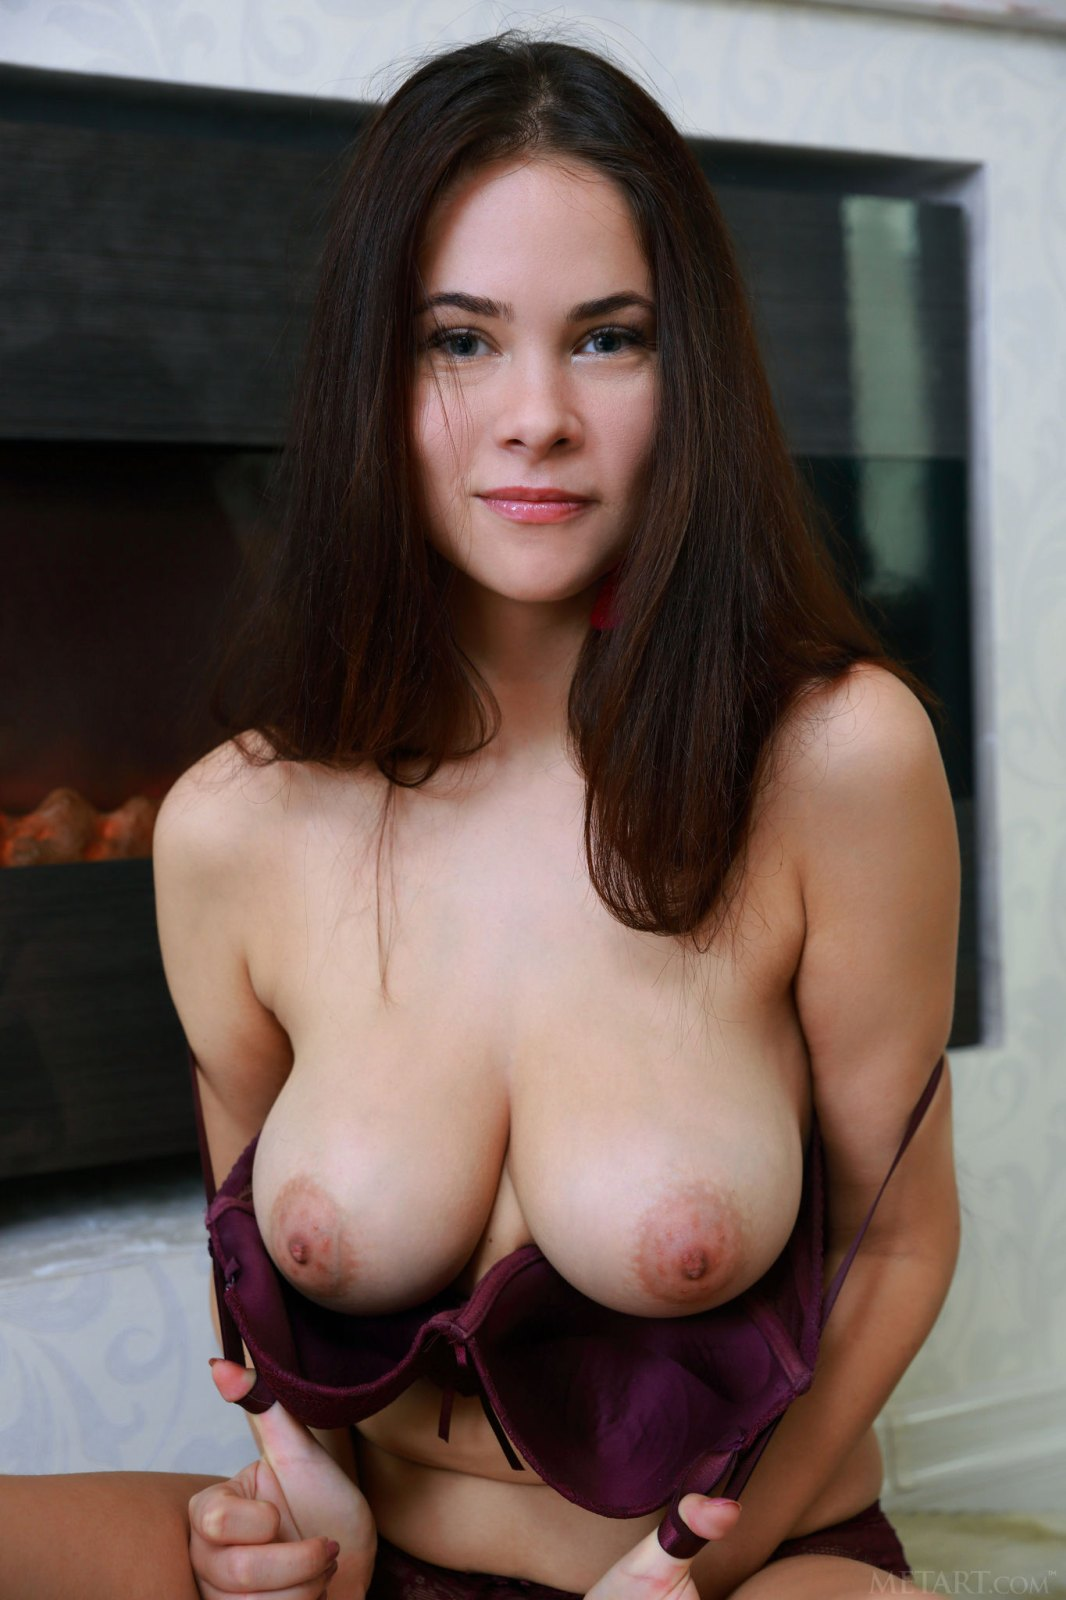 Amazing Boobs Pic martina mink nude in affectionate - free met art picture